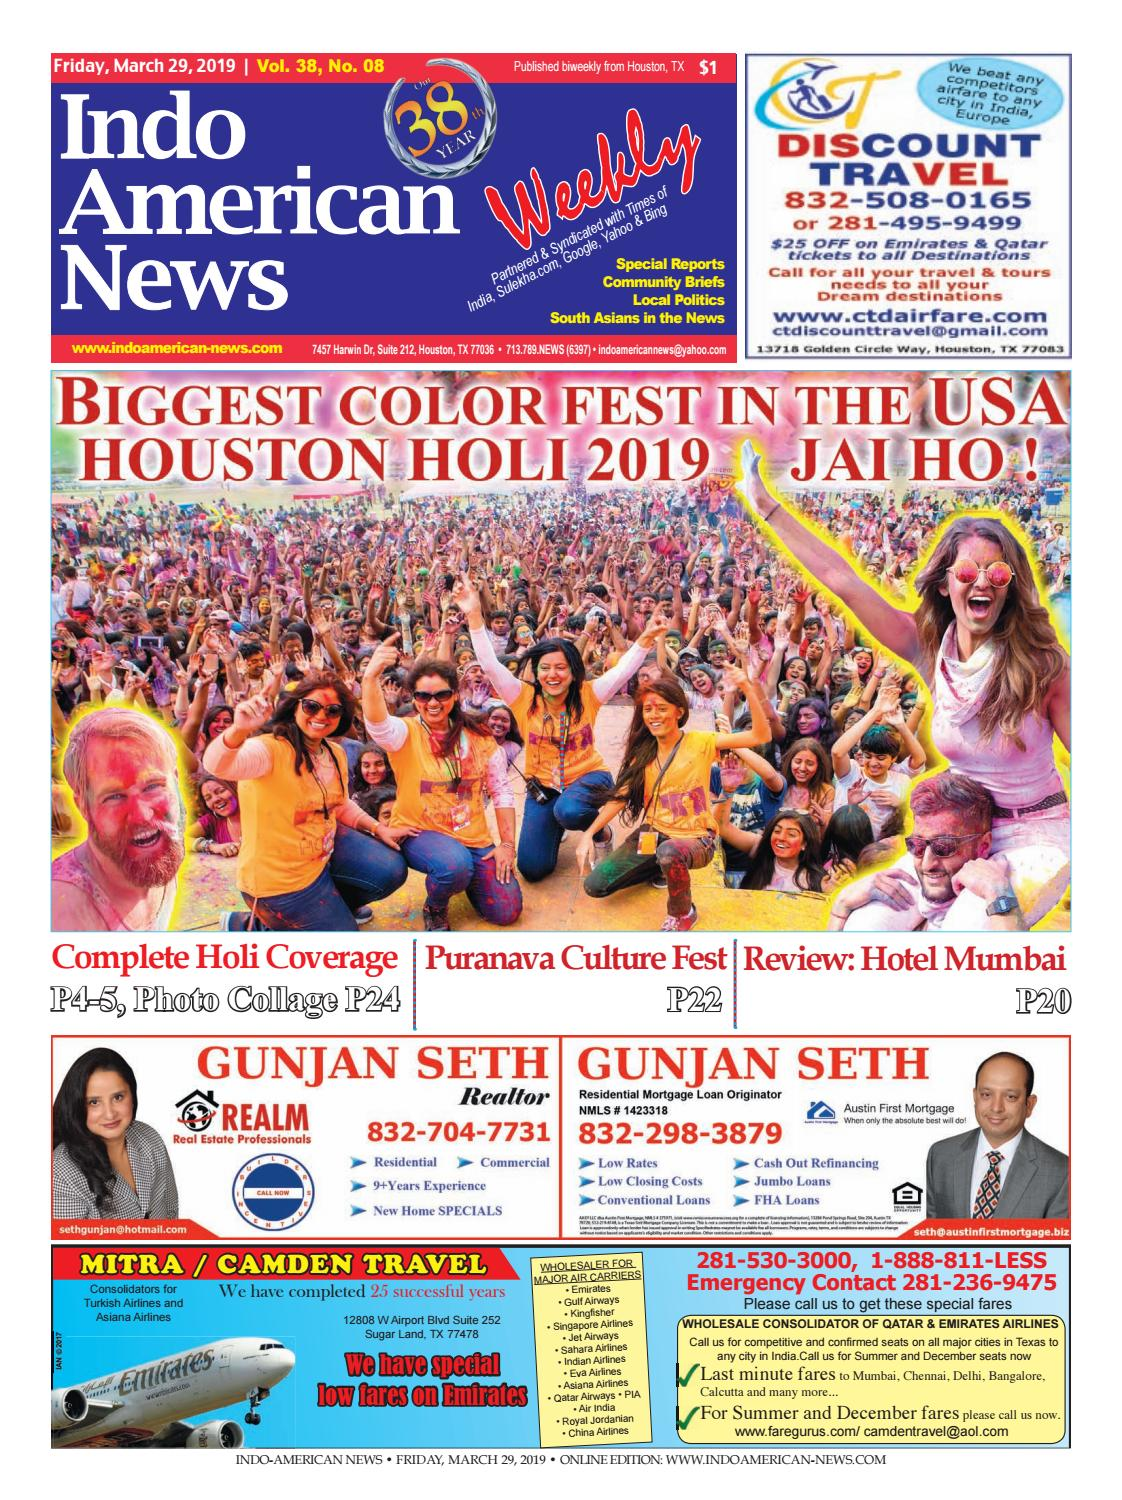 Indo-American News March 29, 2019 by Indo American News - issuu